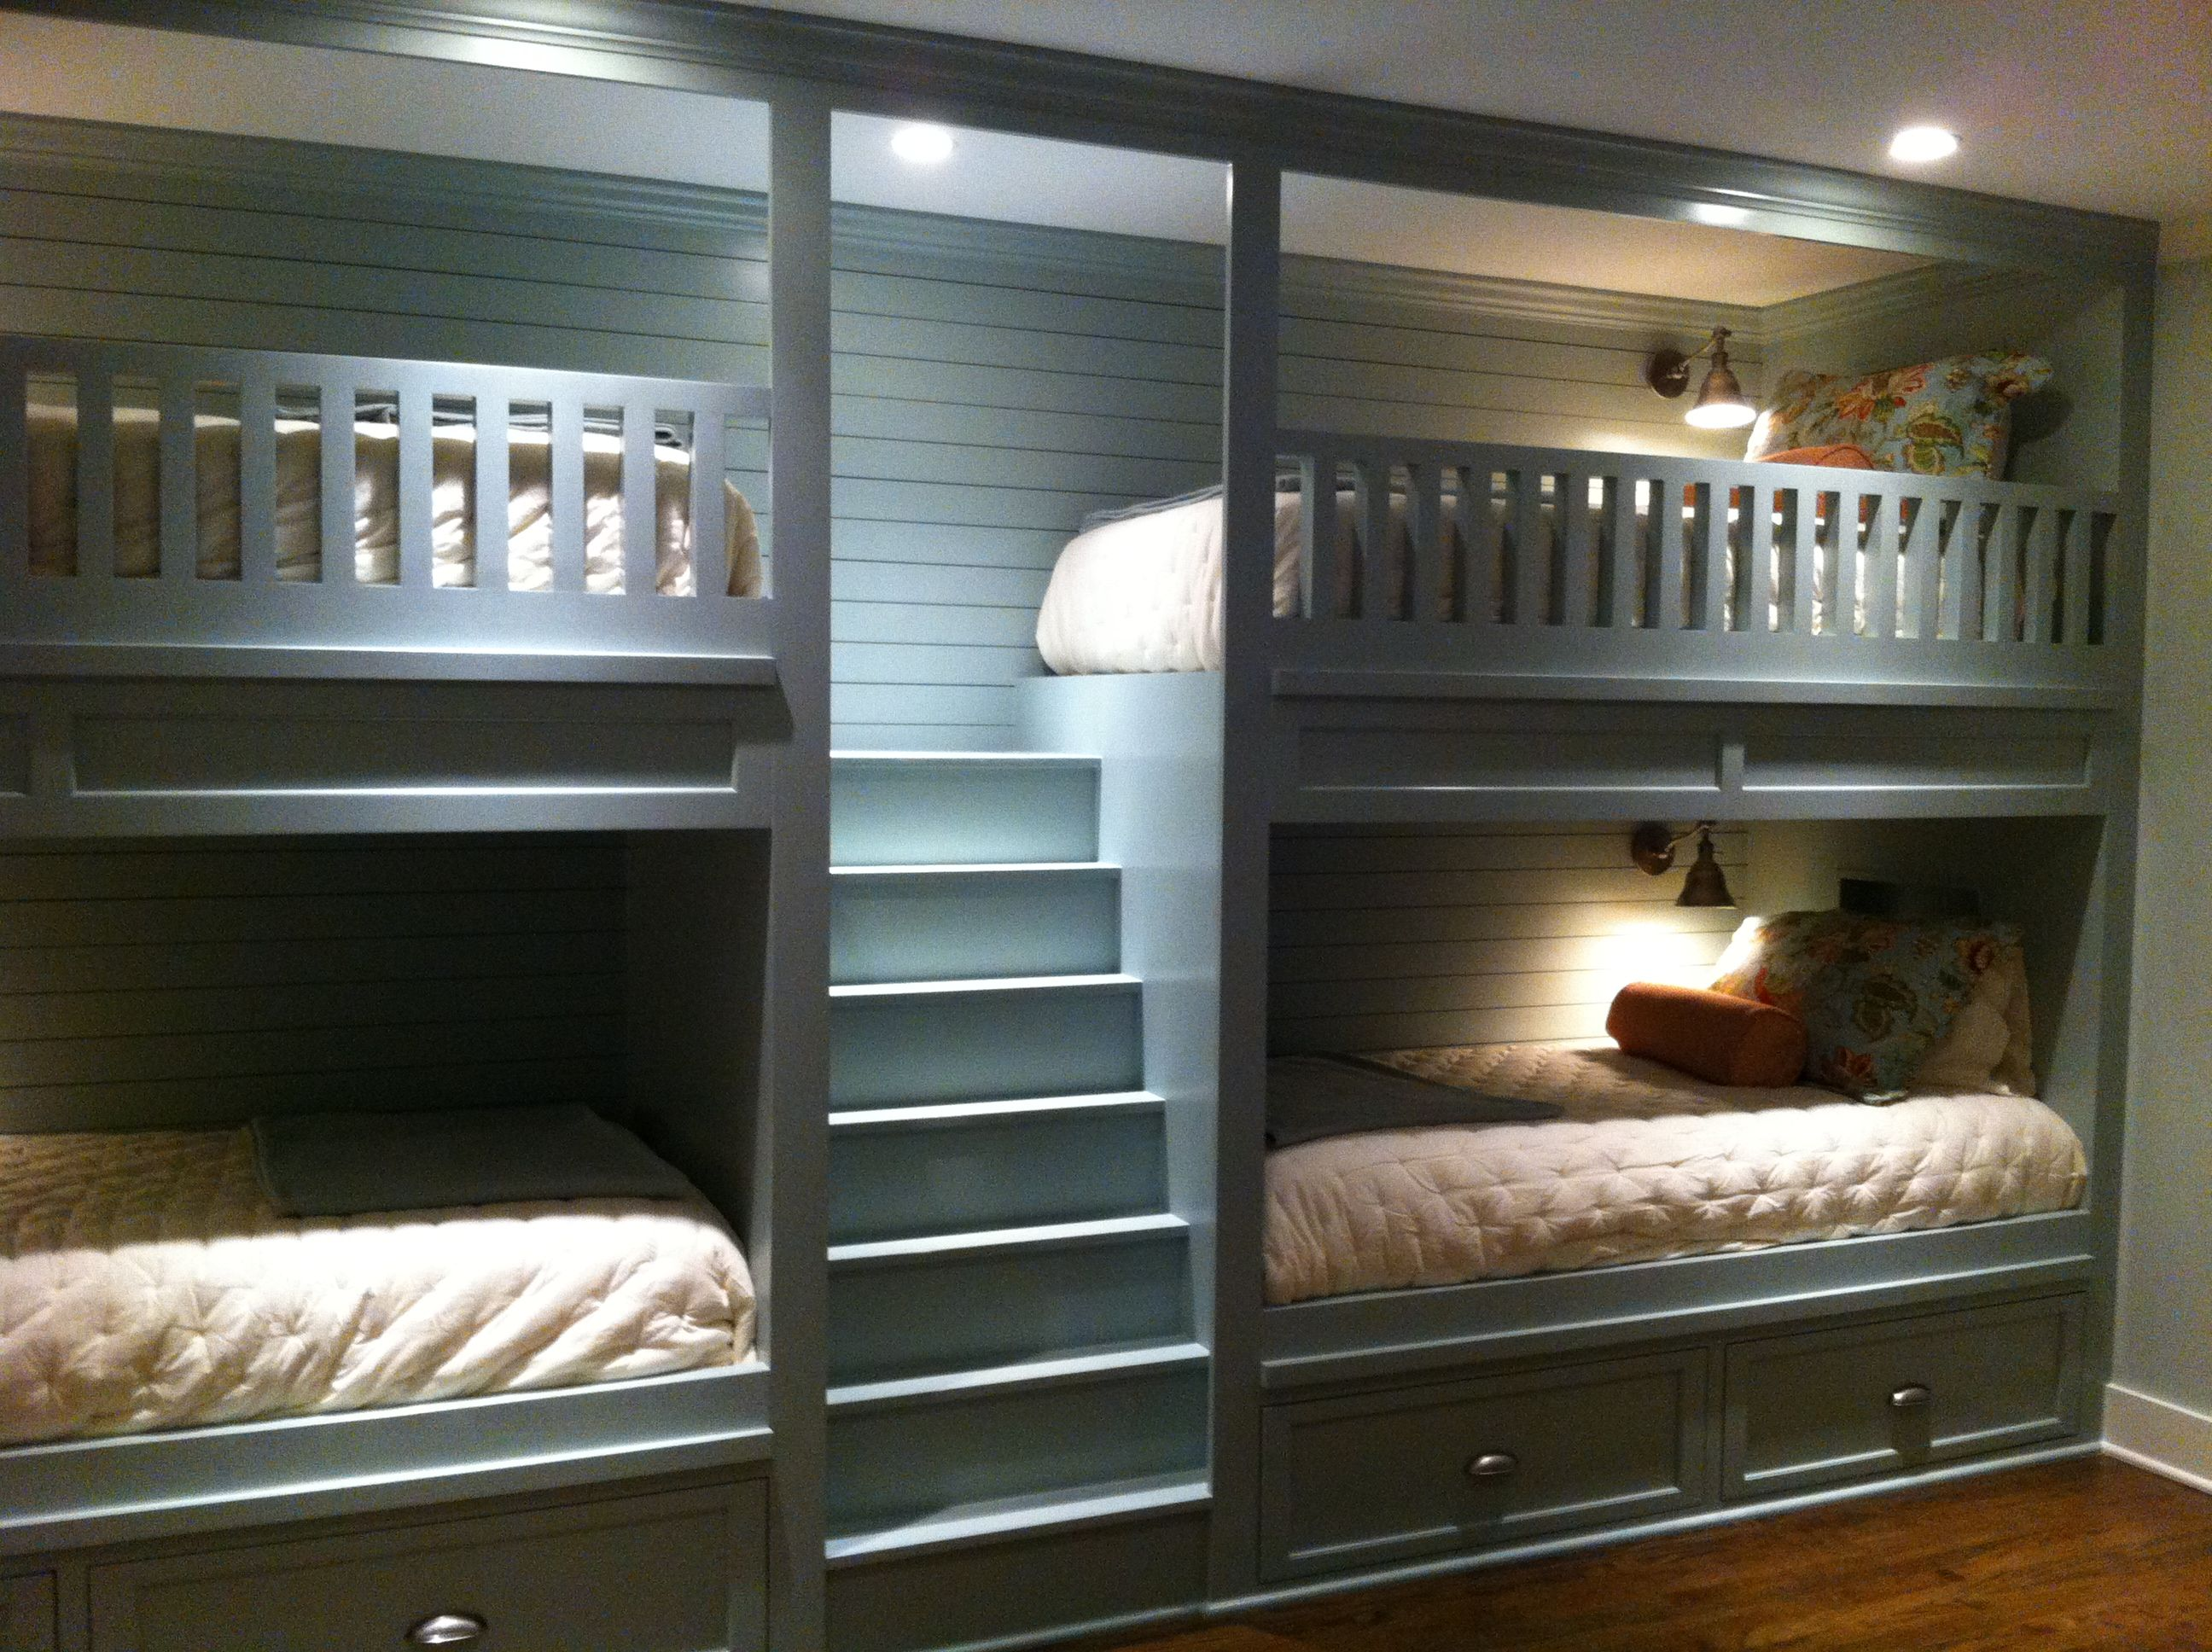 Double bunk beds in our new basement bunk room fun for for Bunk bed and bang